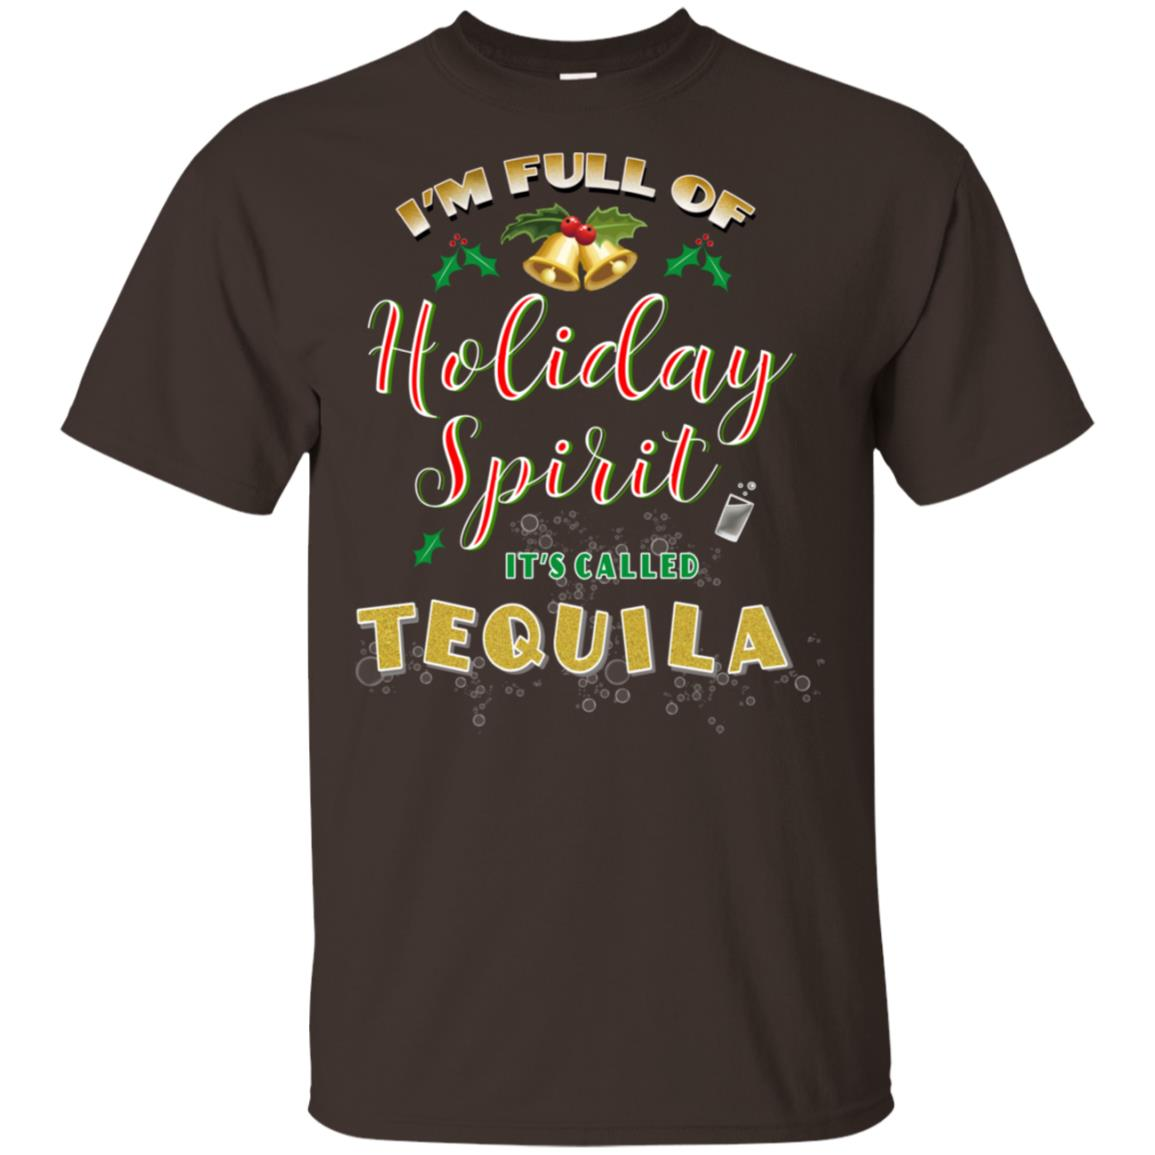 Funny Holiday Spirits Tequila Christmas Drinking Unisex Short Sleeve